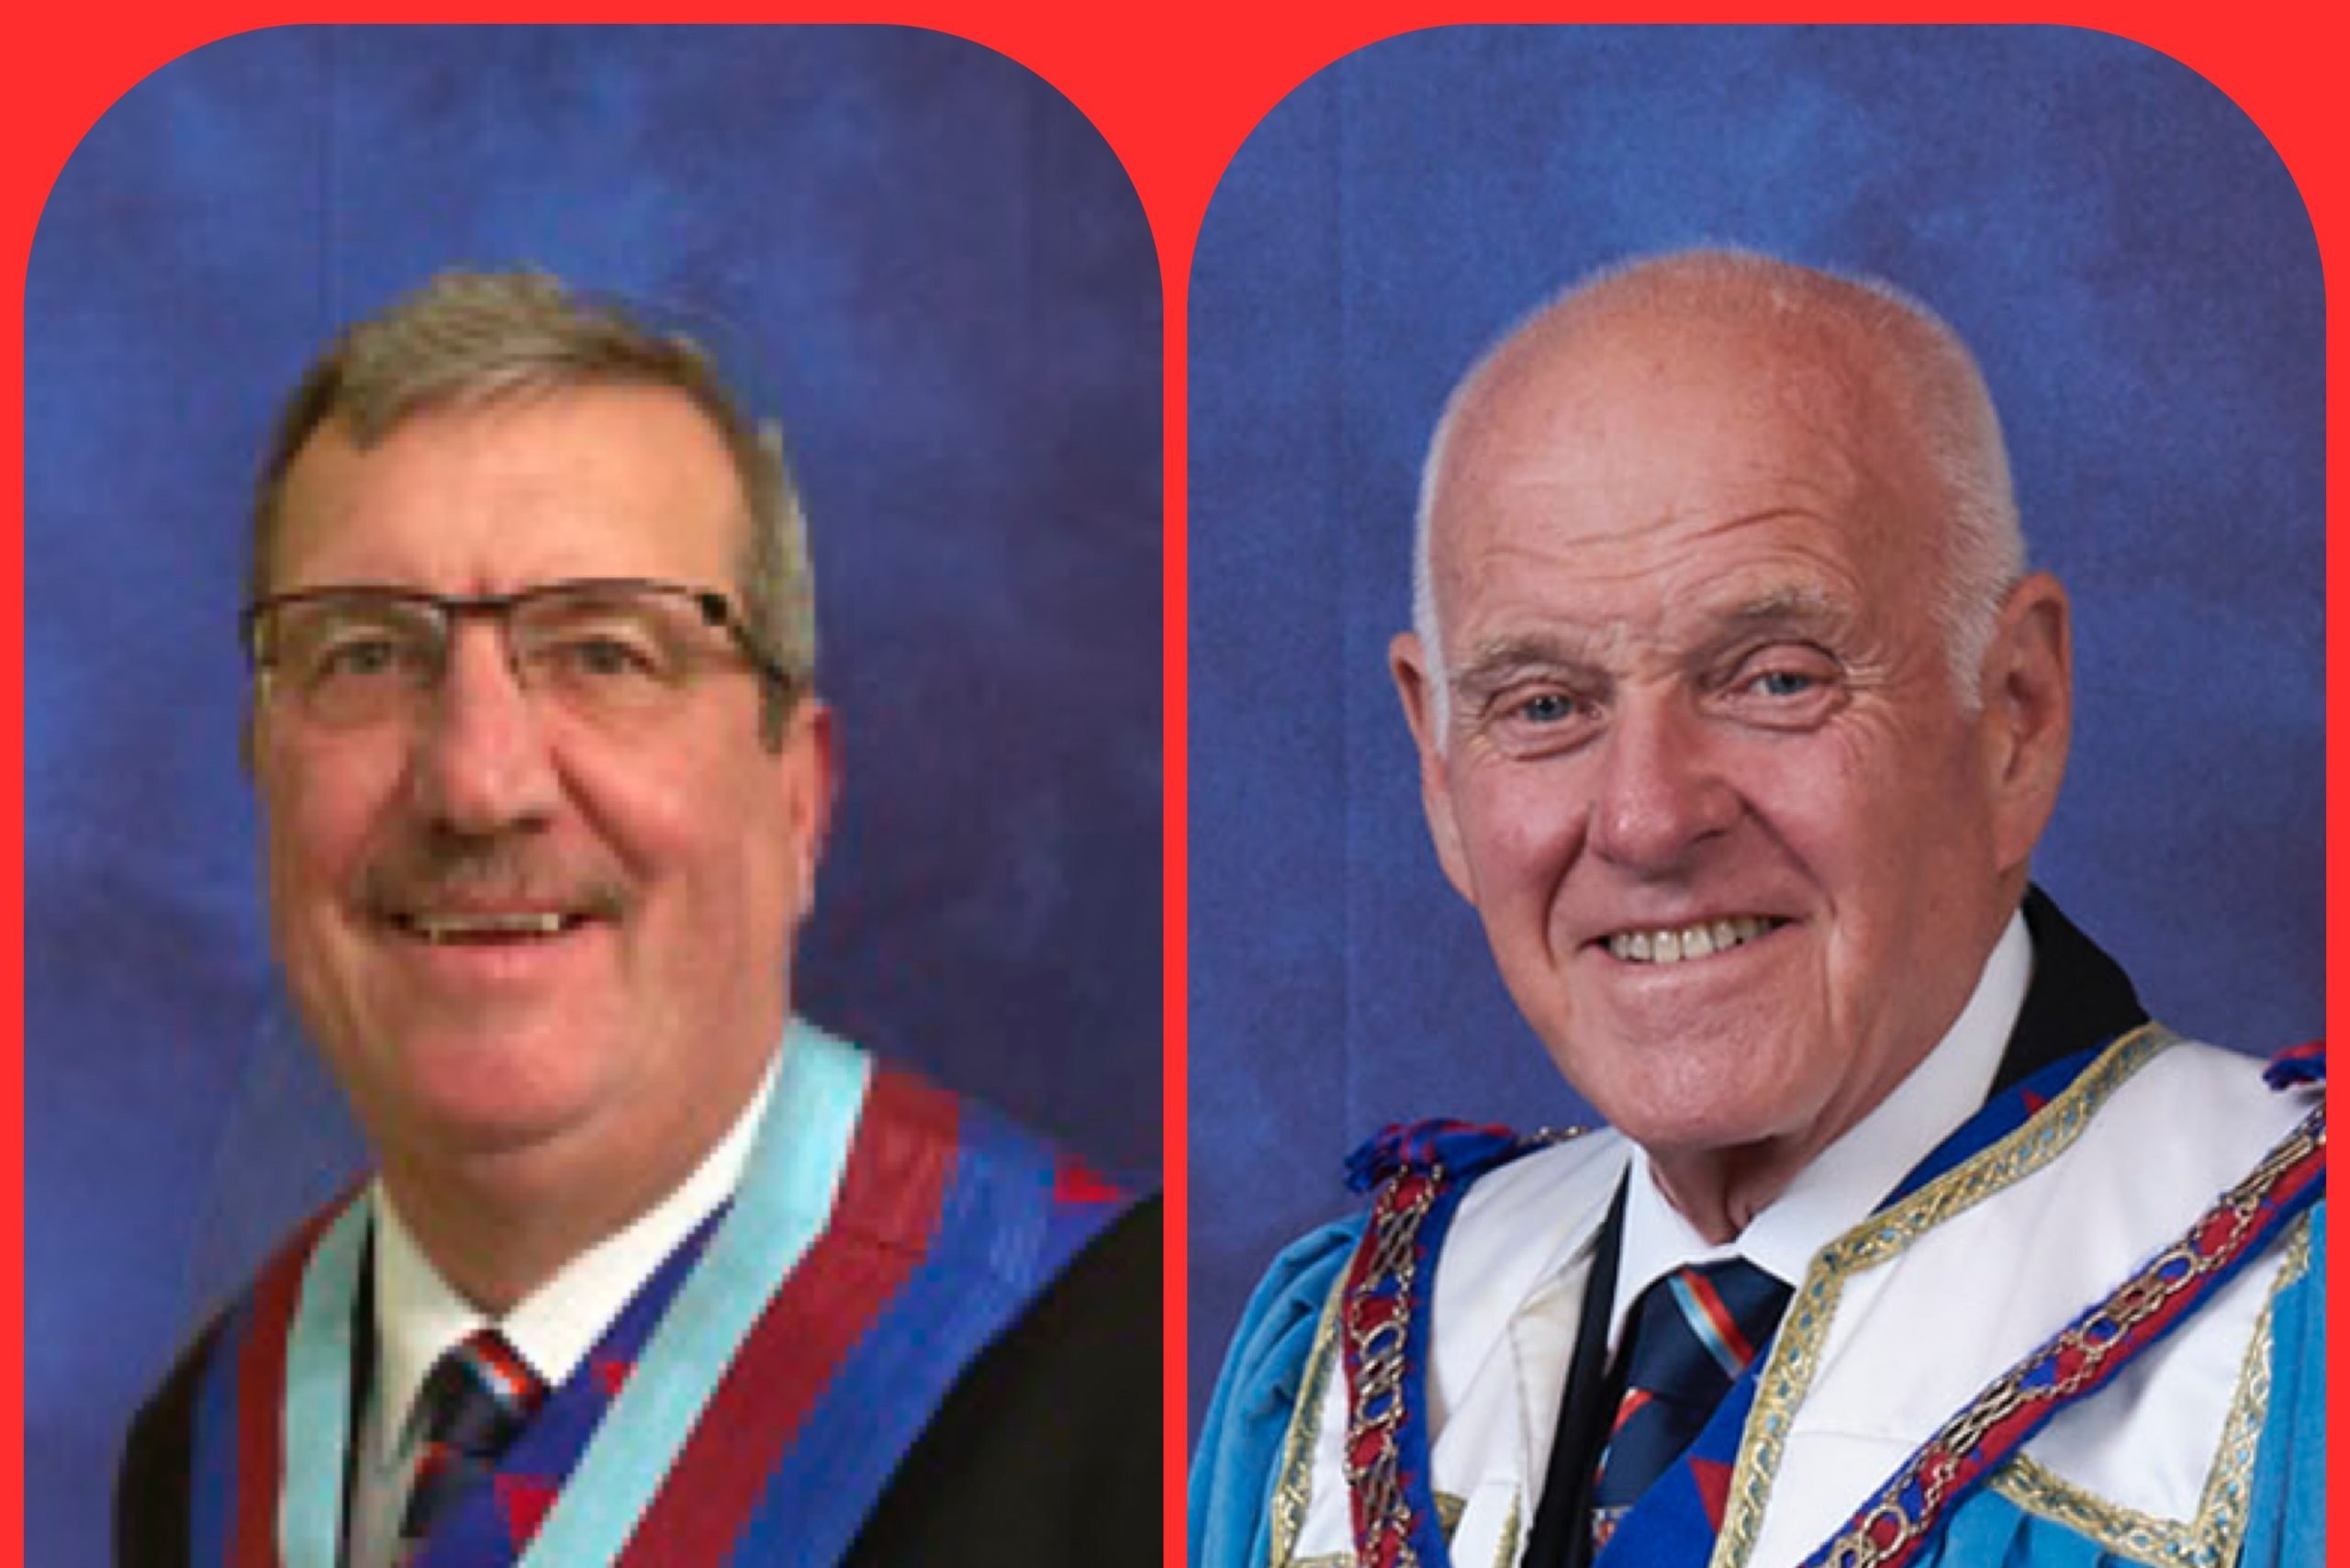 Bedfordshire Royal Arch Grand Appointments